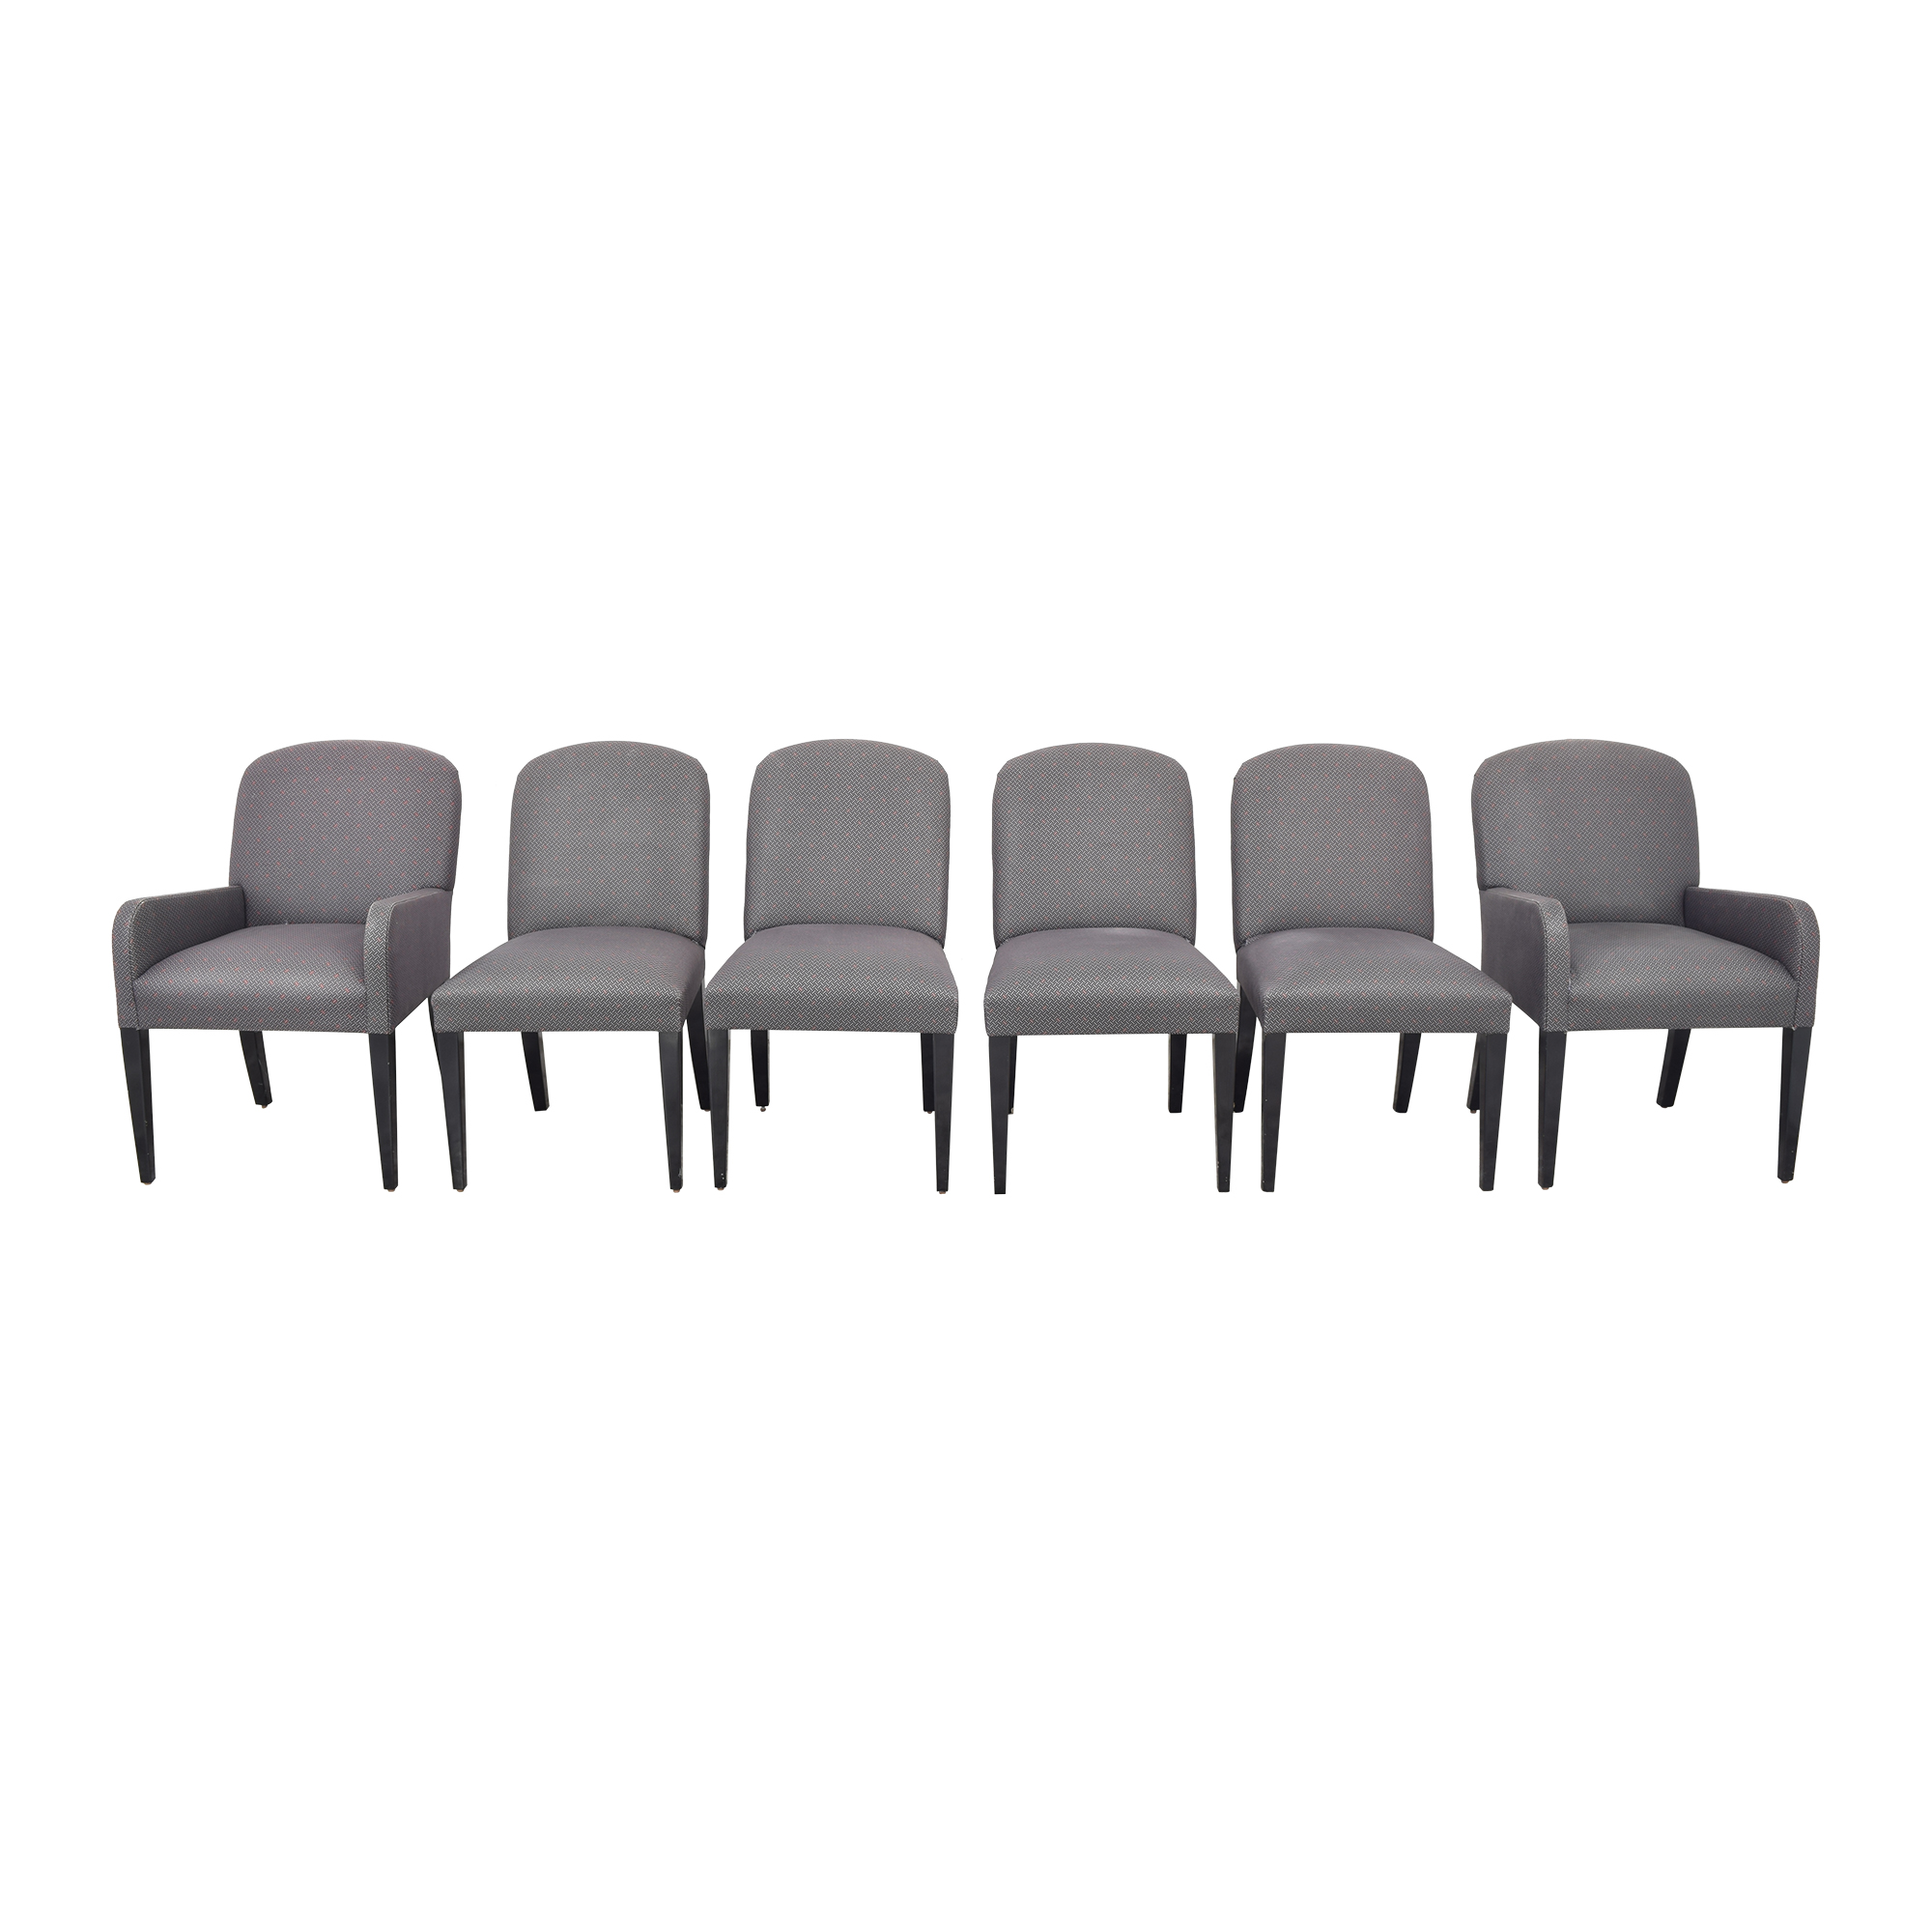 Casa Bisque Upholstered Dining Chairs Casa Bique